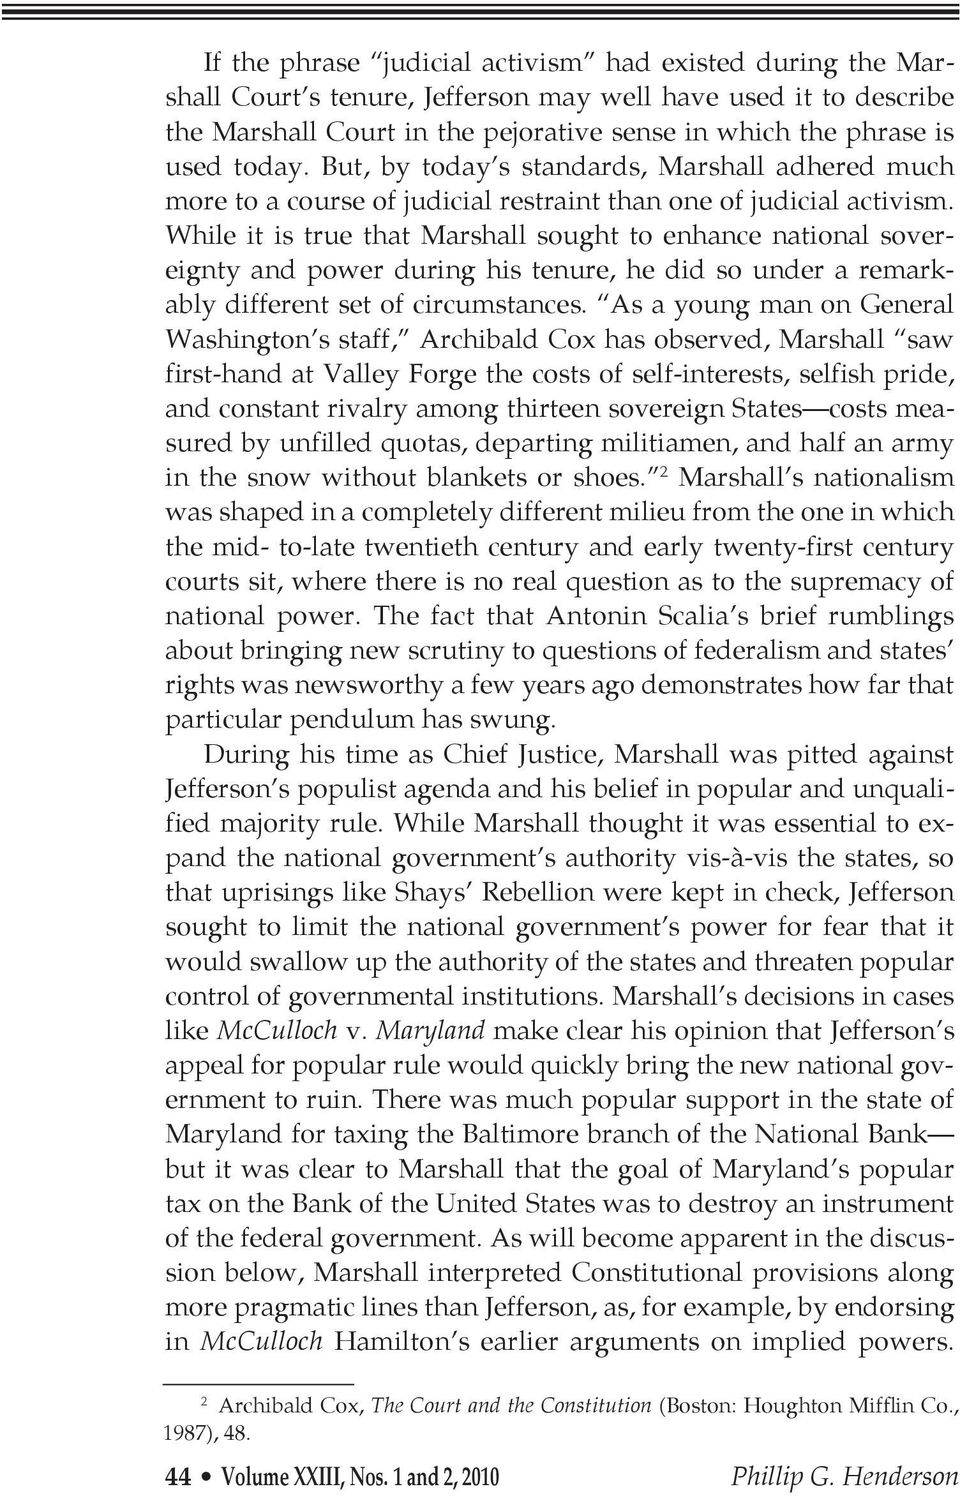 While it is true that Marshall sought to enhance national sovereignty and power during his tenure, he did so under a remarkably different set of circumstances.